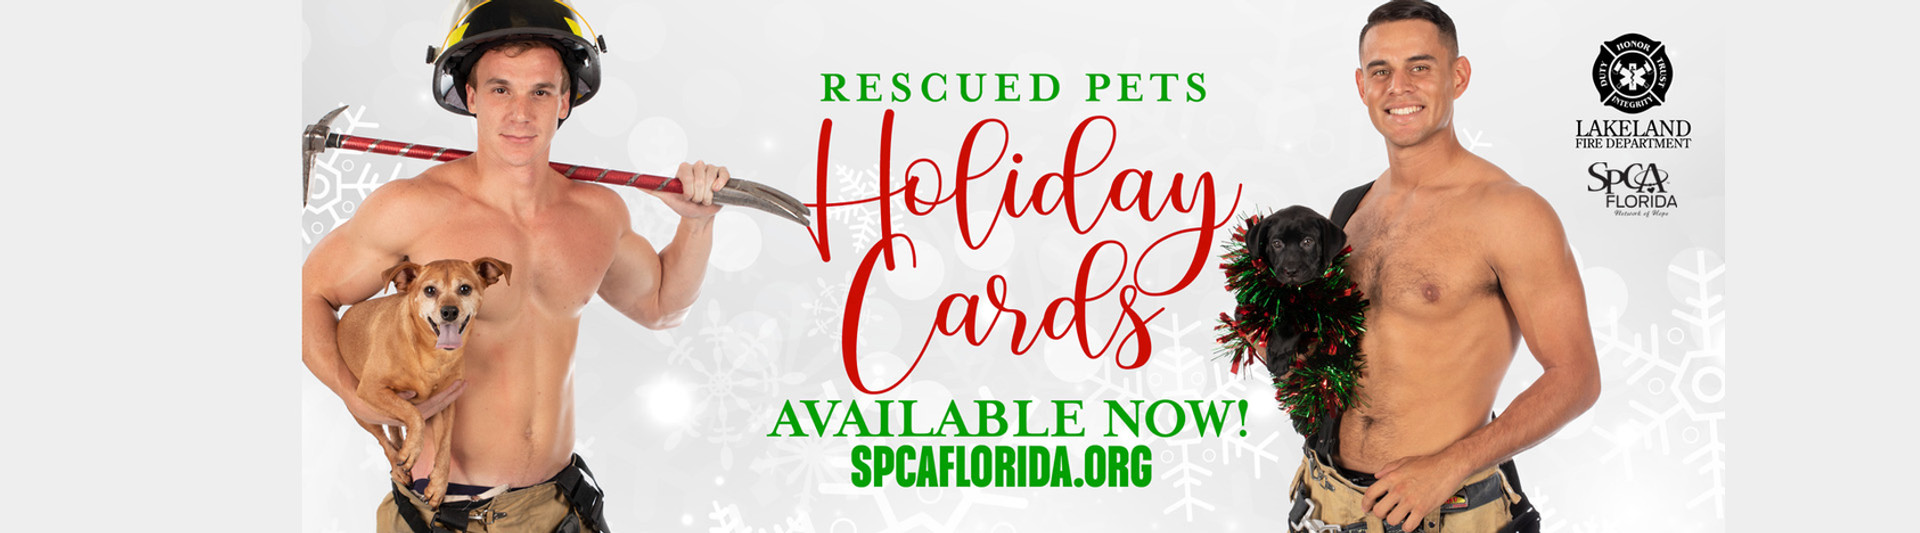 2020 Rescued Pets Holiday Cards